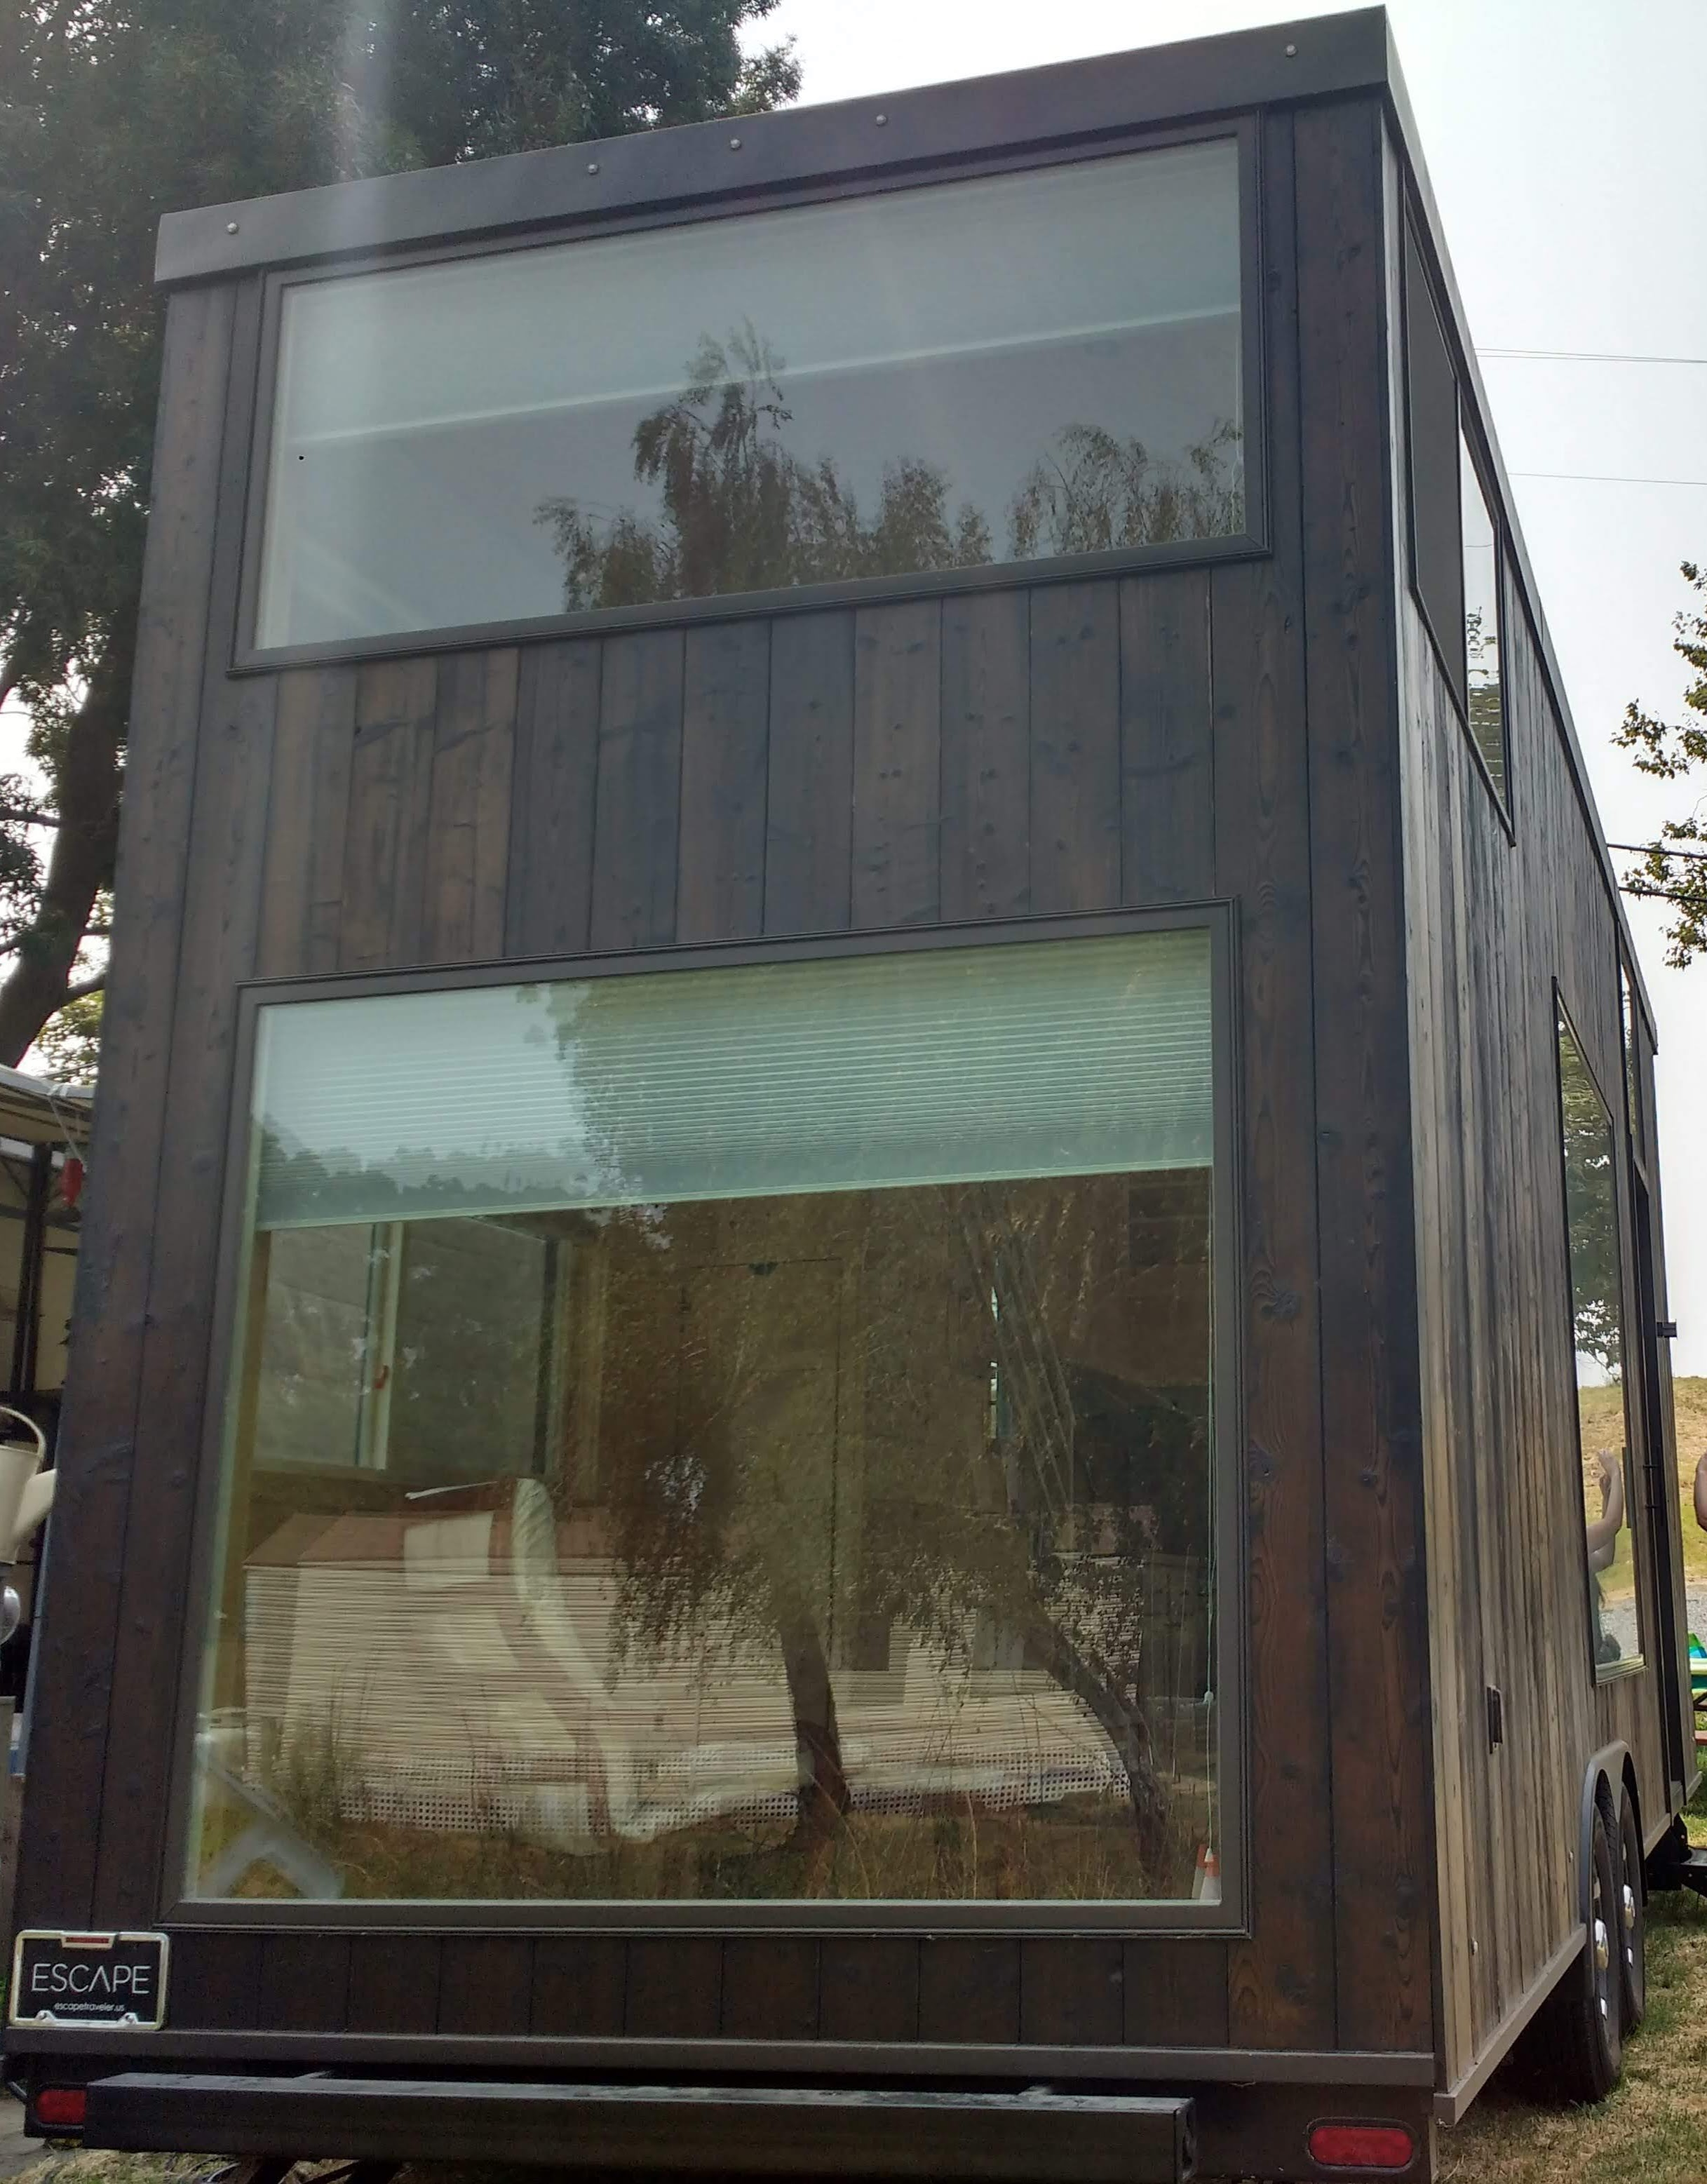 tiny travel chick fun travel escape one tiny house back view